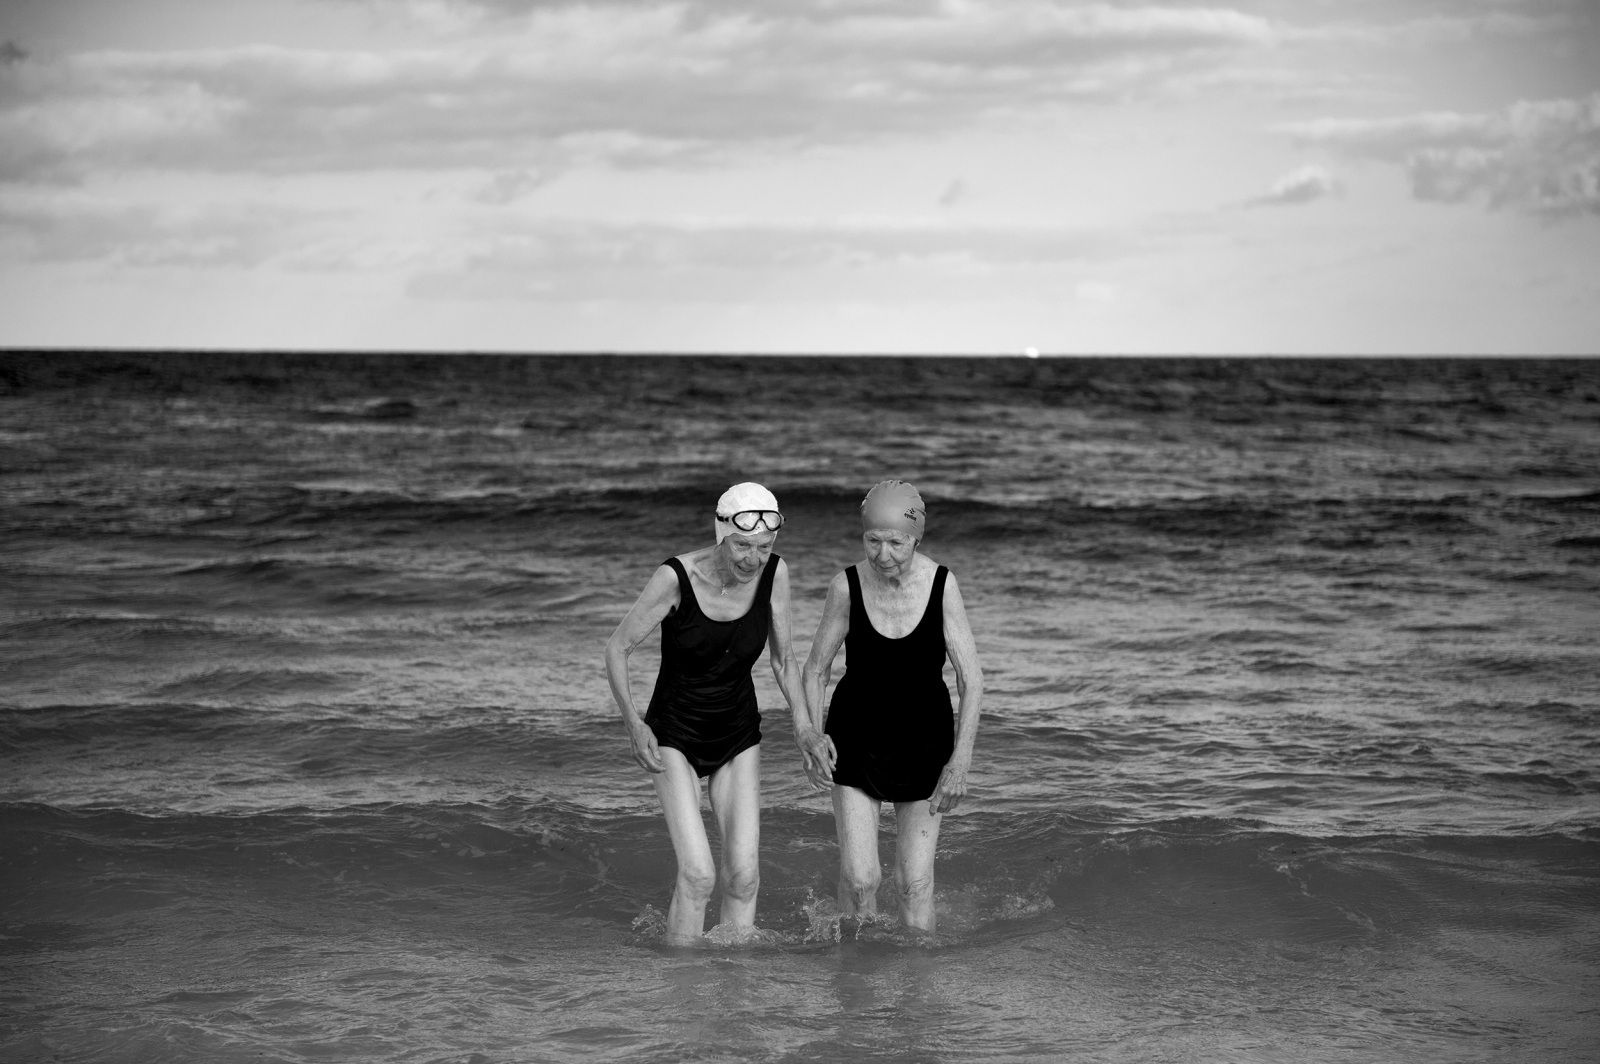 These two ladies are best friends and swim together every morning at Cottesloe beach in Perth, Australia. All the main cities in Australia are located along the coast lines. Their relationship to the beach is part of their culture and identity.